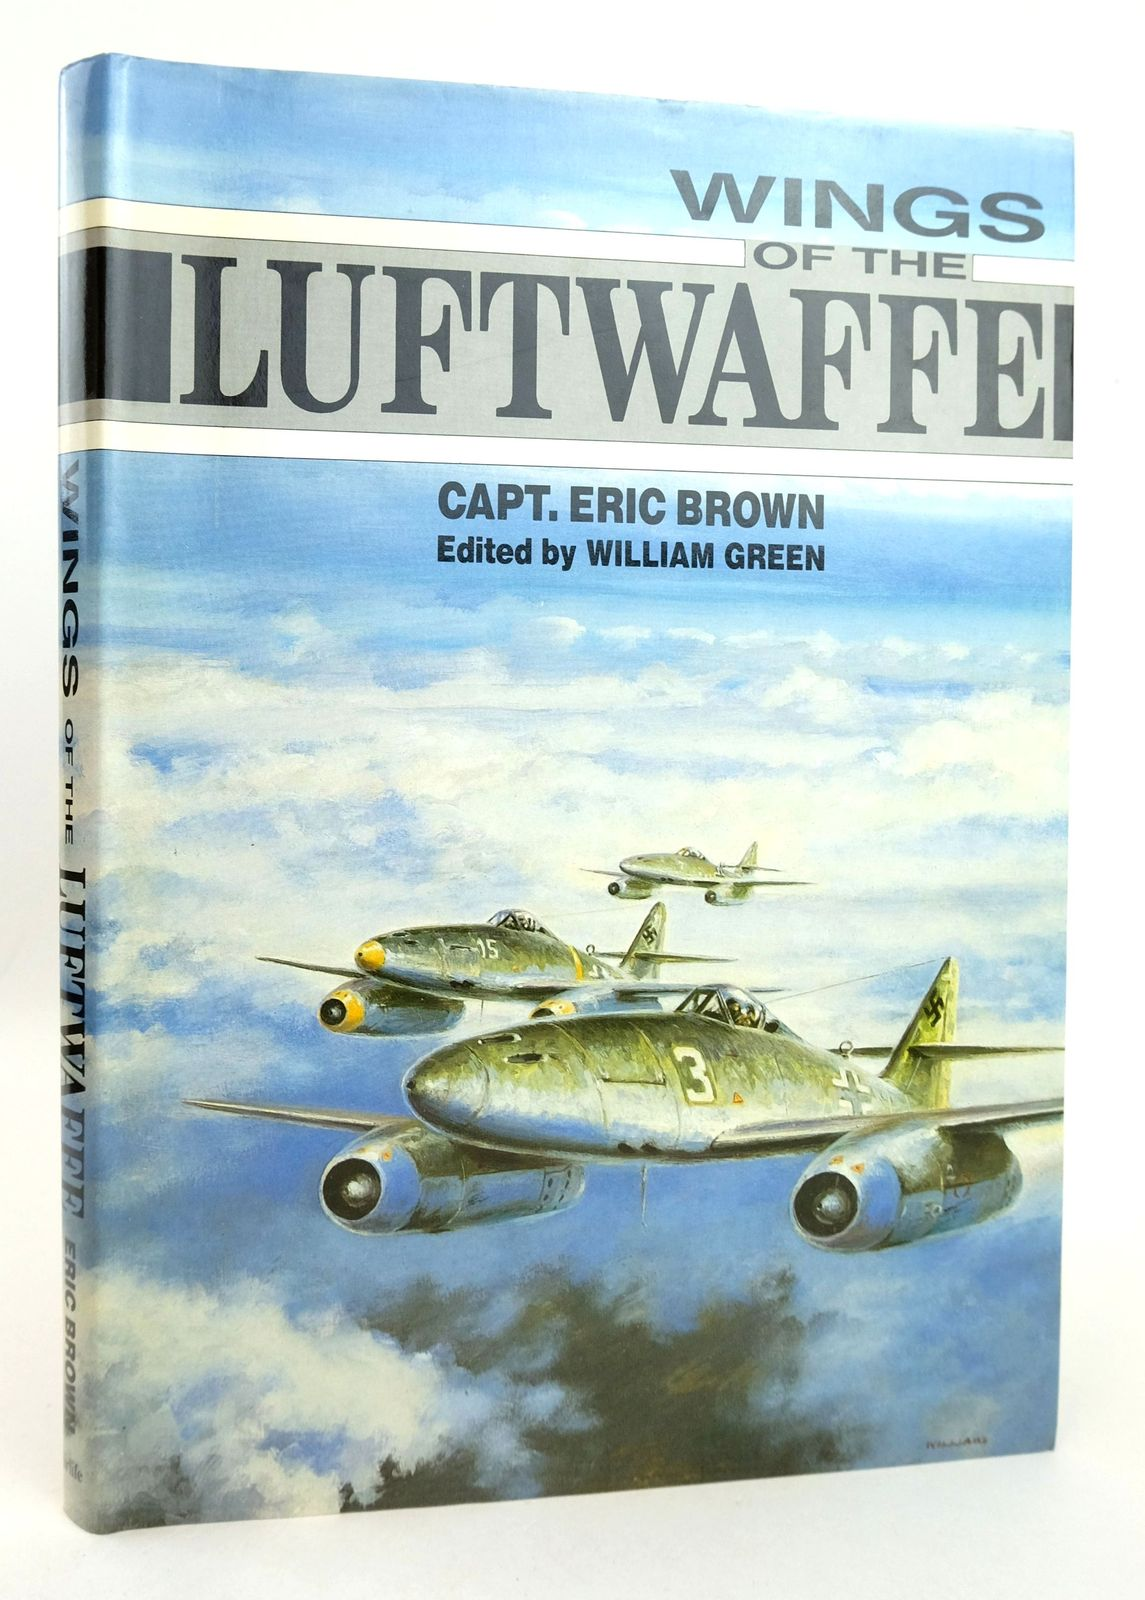 Photo of WINGS OF THE LUFTWAFFE written by Brown, Eric M. published by Airlife (STOCK CODE: 1819391)  for sale by Stella & Rose's Books